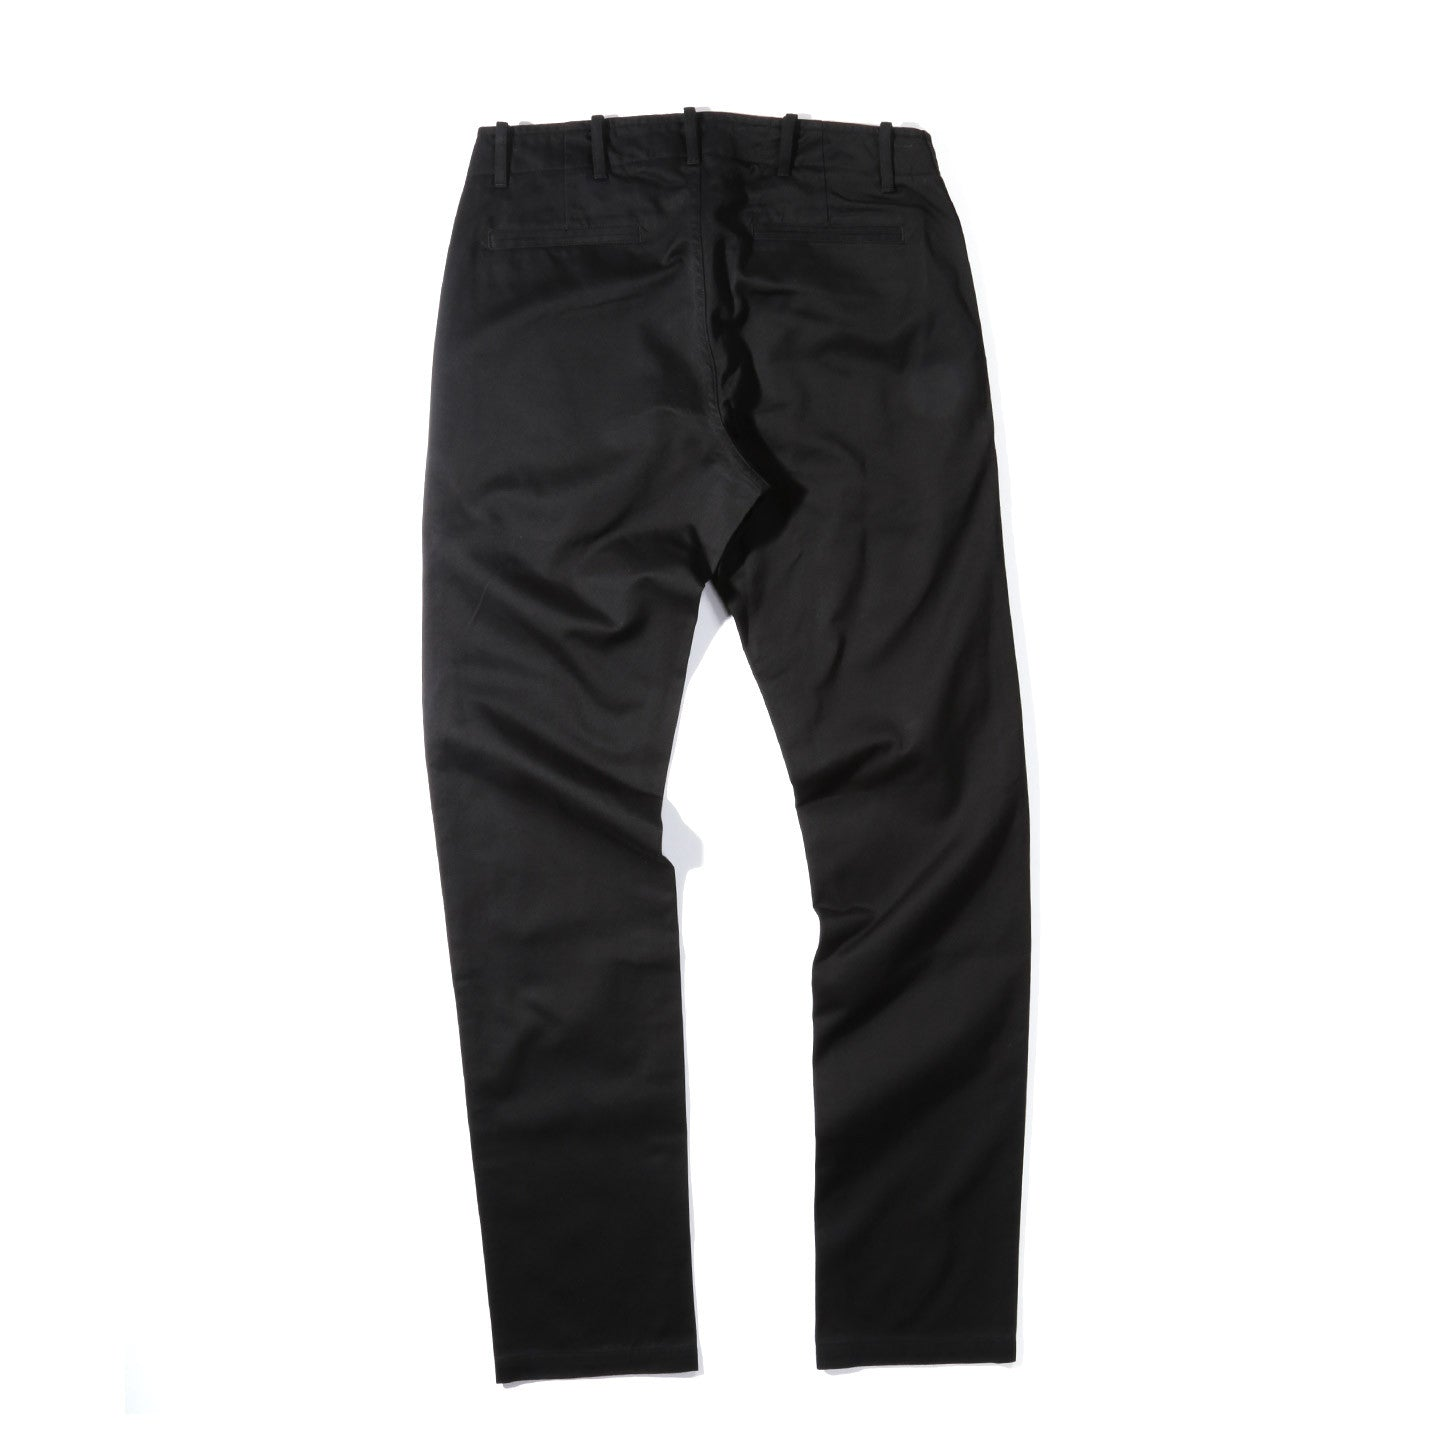 WINGS + HORNS WESTPOINT CHINO BLACK